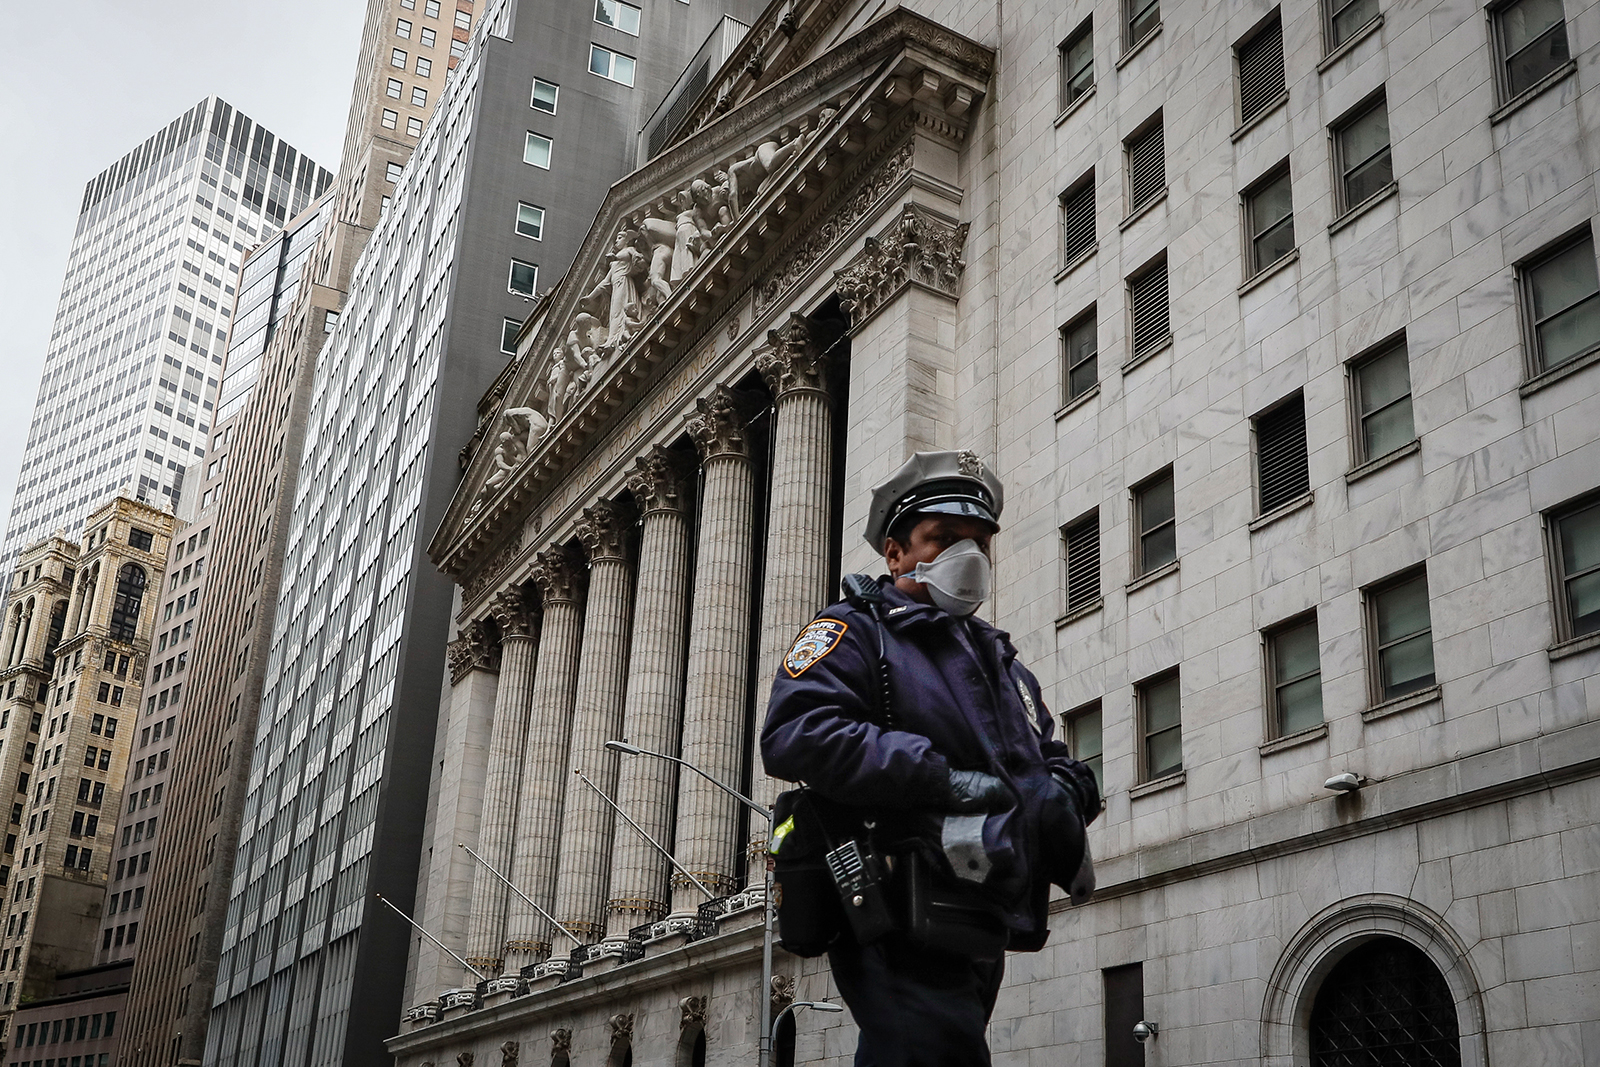 An NYPD officer walks along a sparsely populated Wall Street in New York City, NY on May 1.